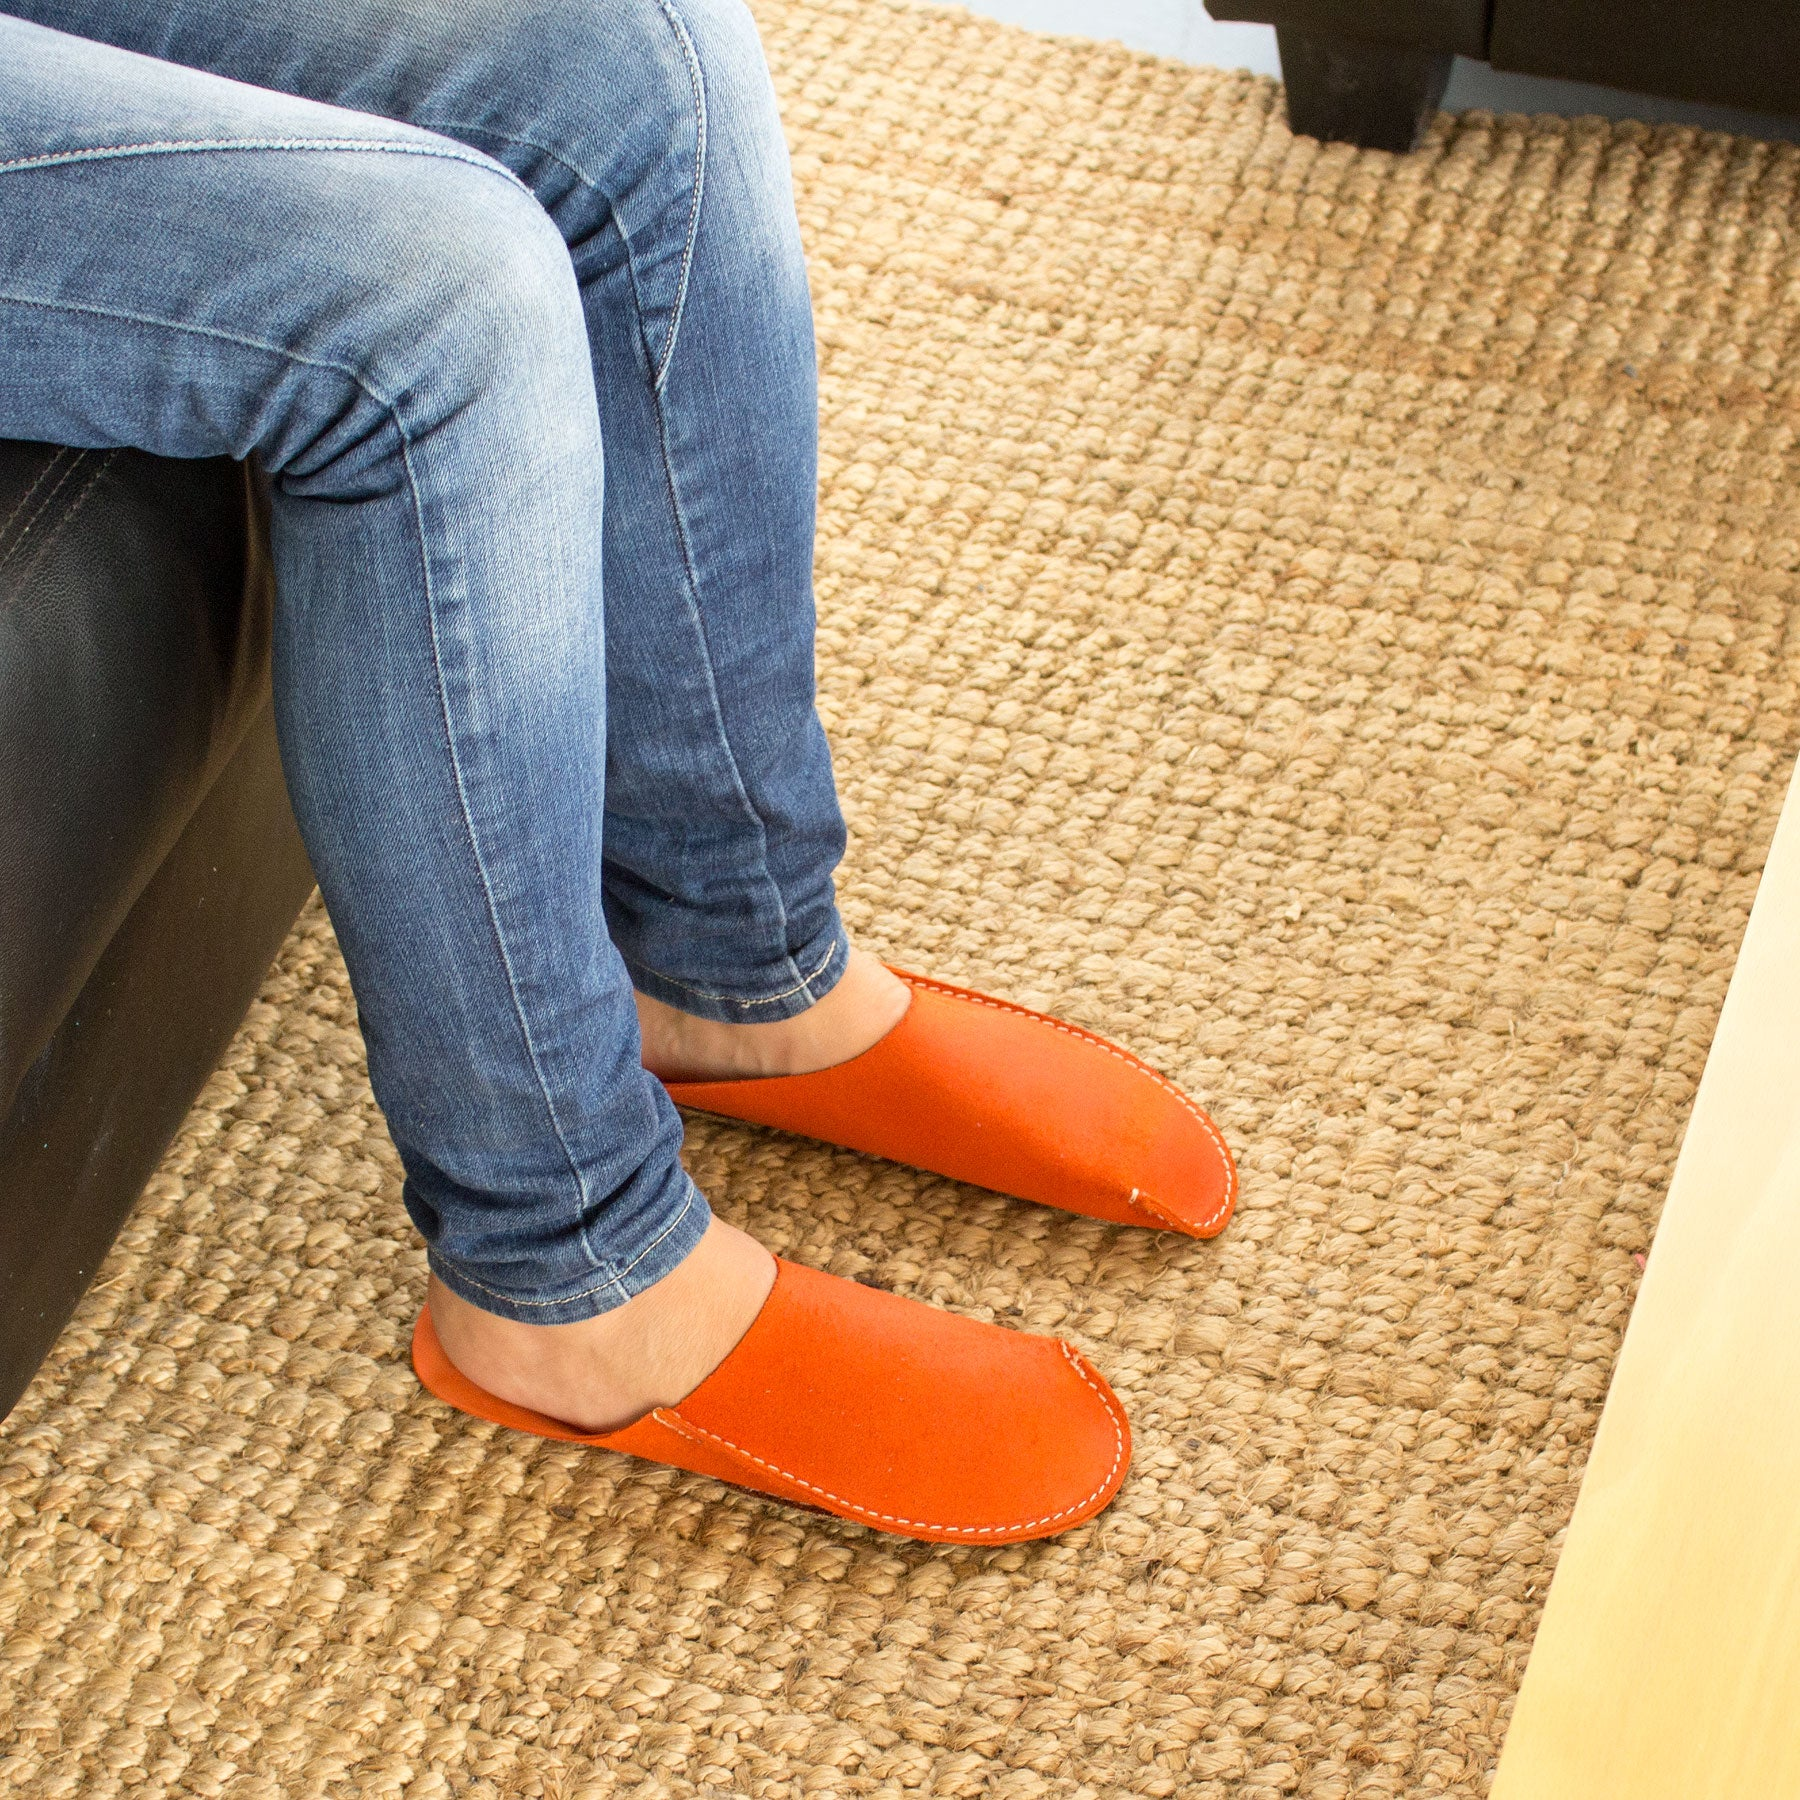 Orange CP Slippers minimalist for man and woman home shoes